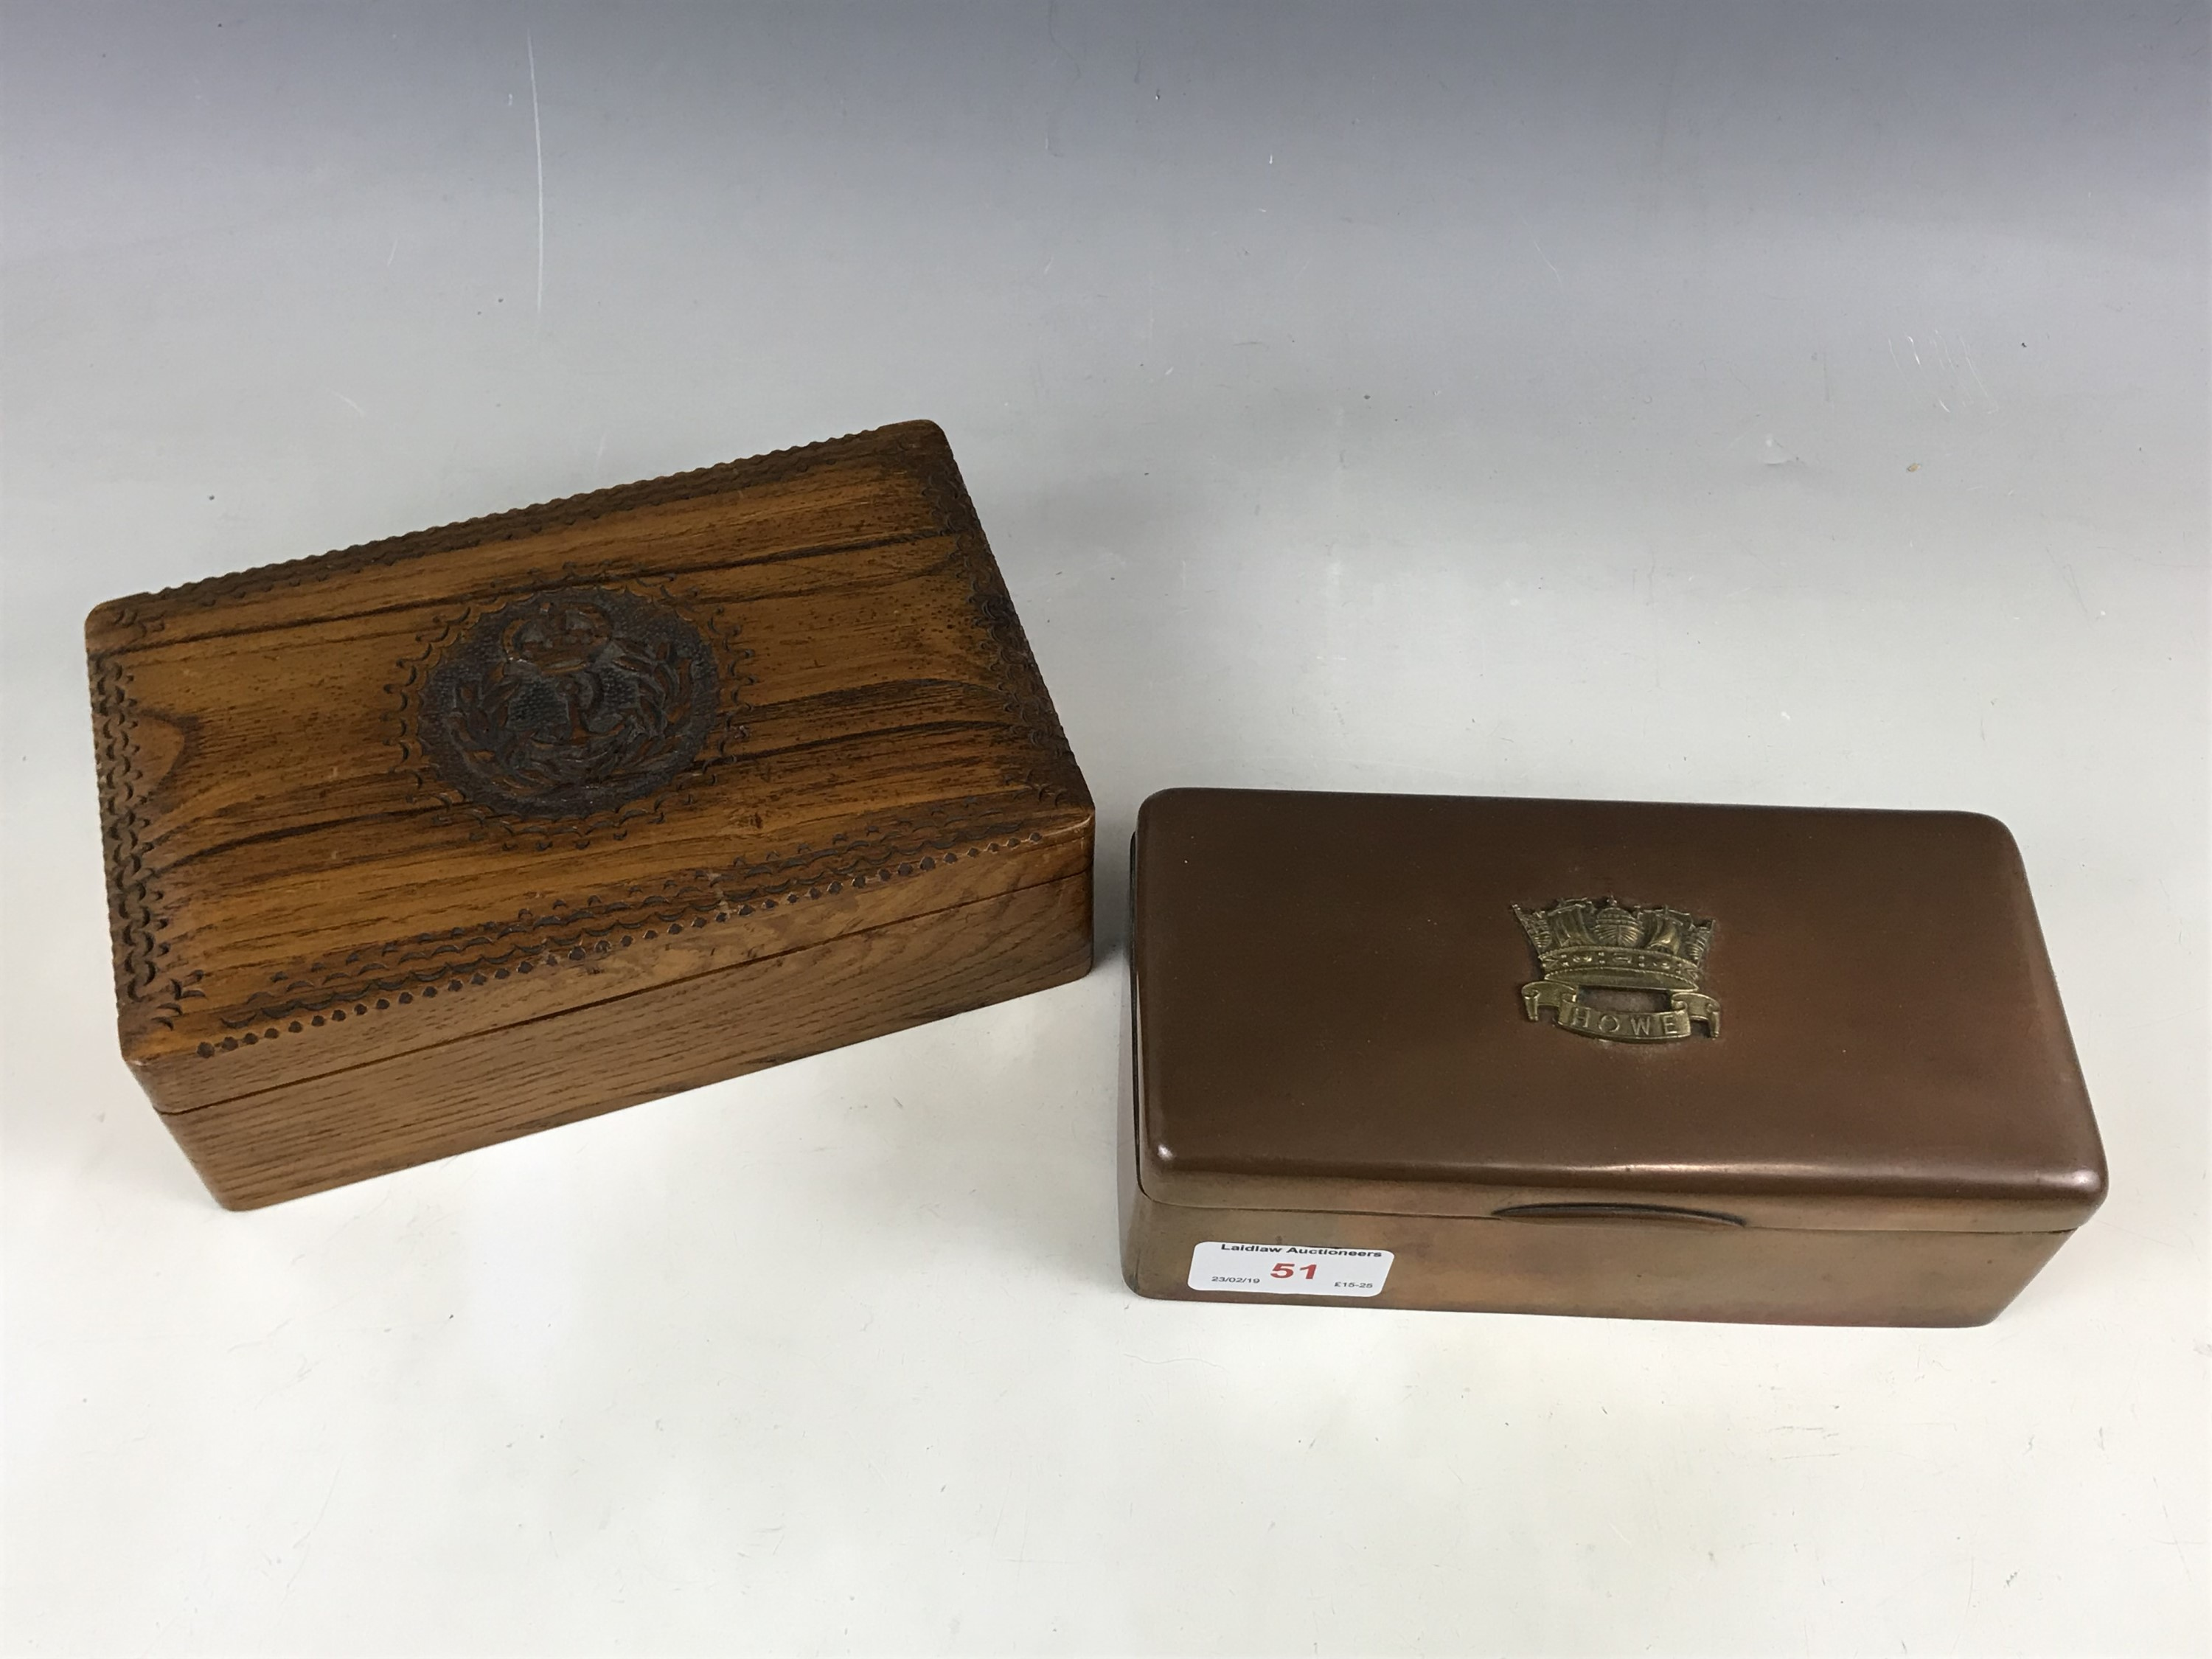 Lot 51 - A Great War Royal Navy Howe Battalion table cigarette box together with an oak cigarette box bearing